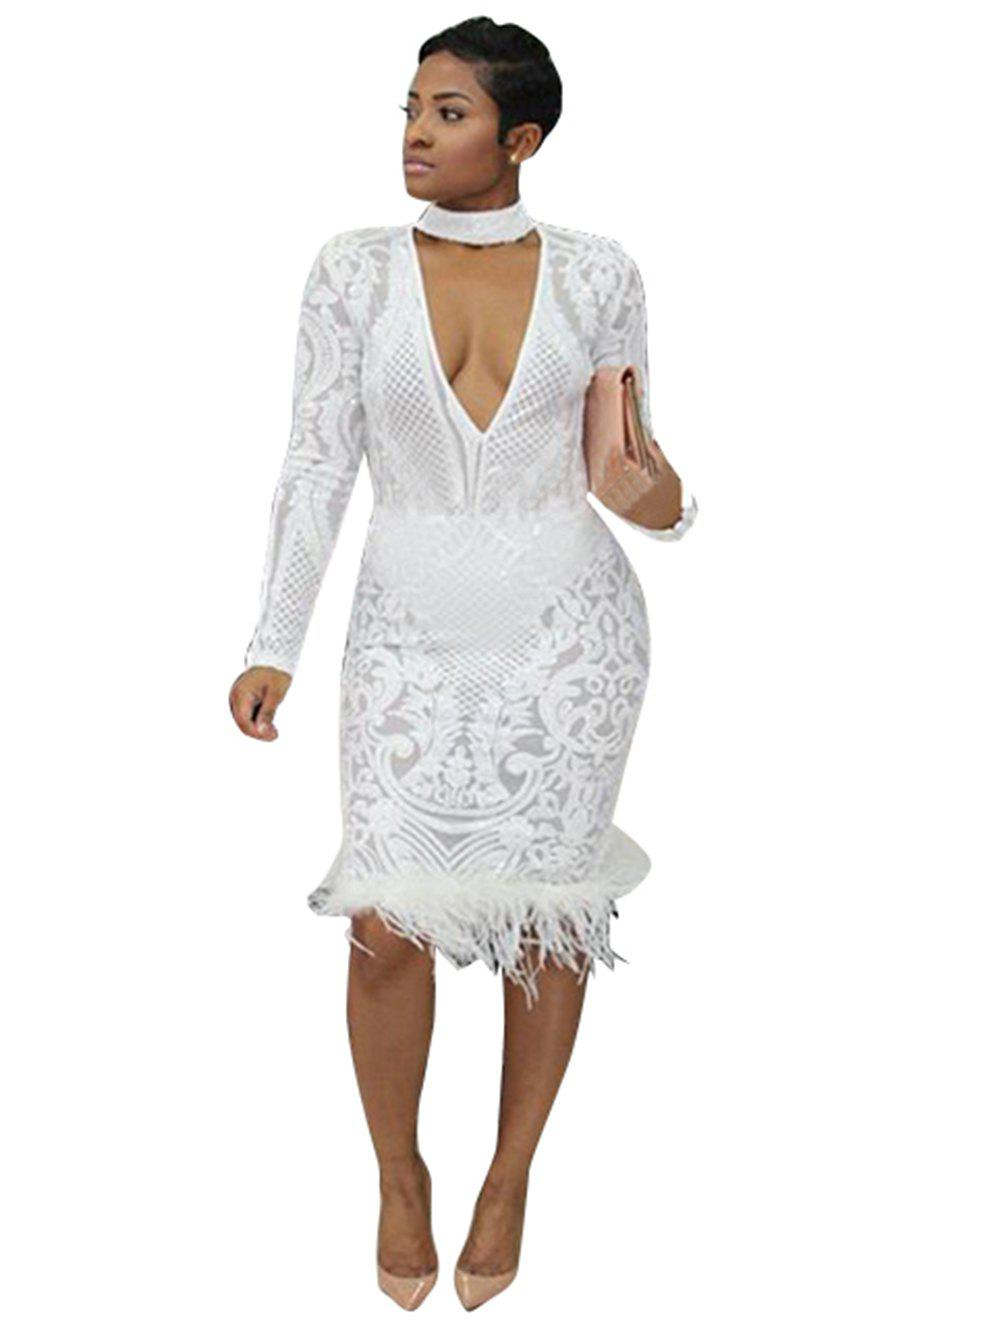 Hot Women Sexy Sequin Lace Ball Dress Romantic Lace Beading Bridal Gown Wedding Dress Party Dress